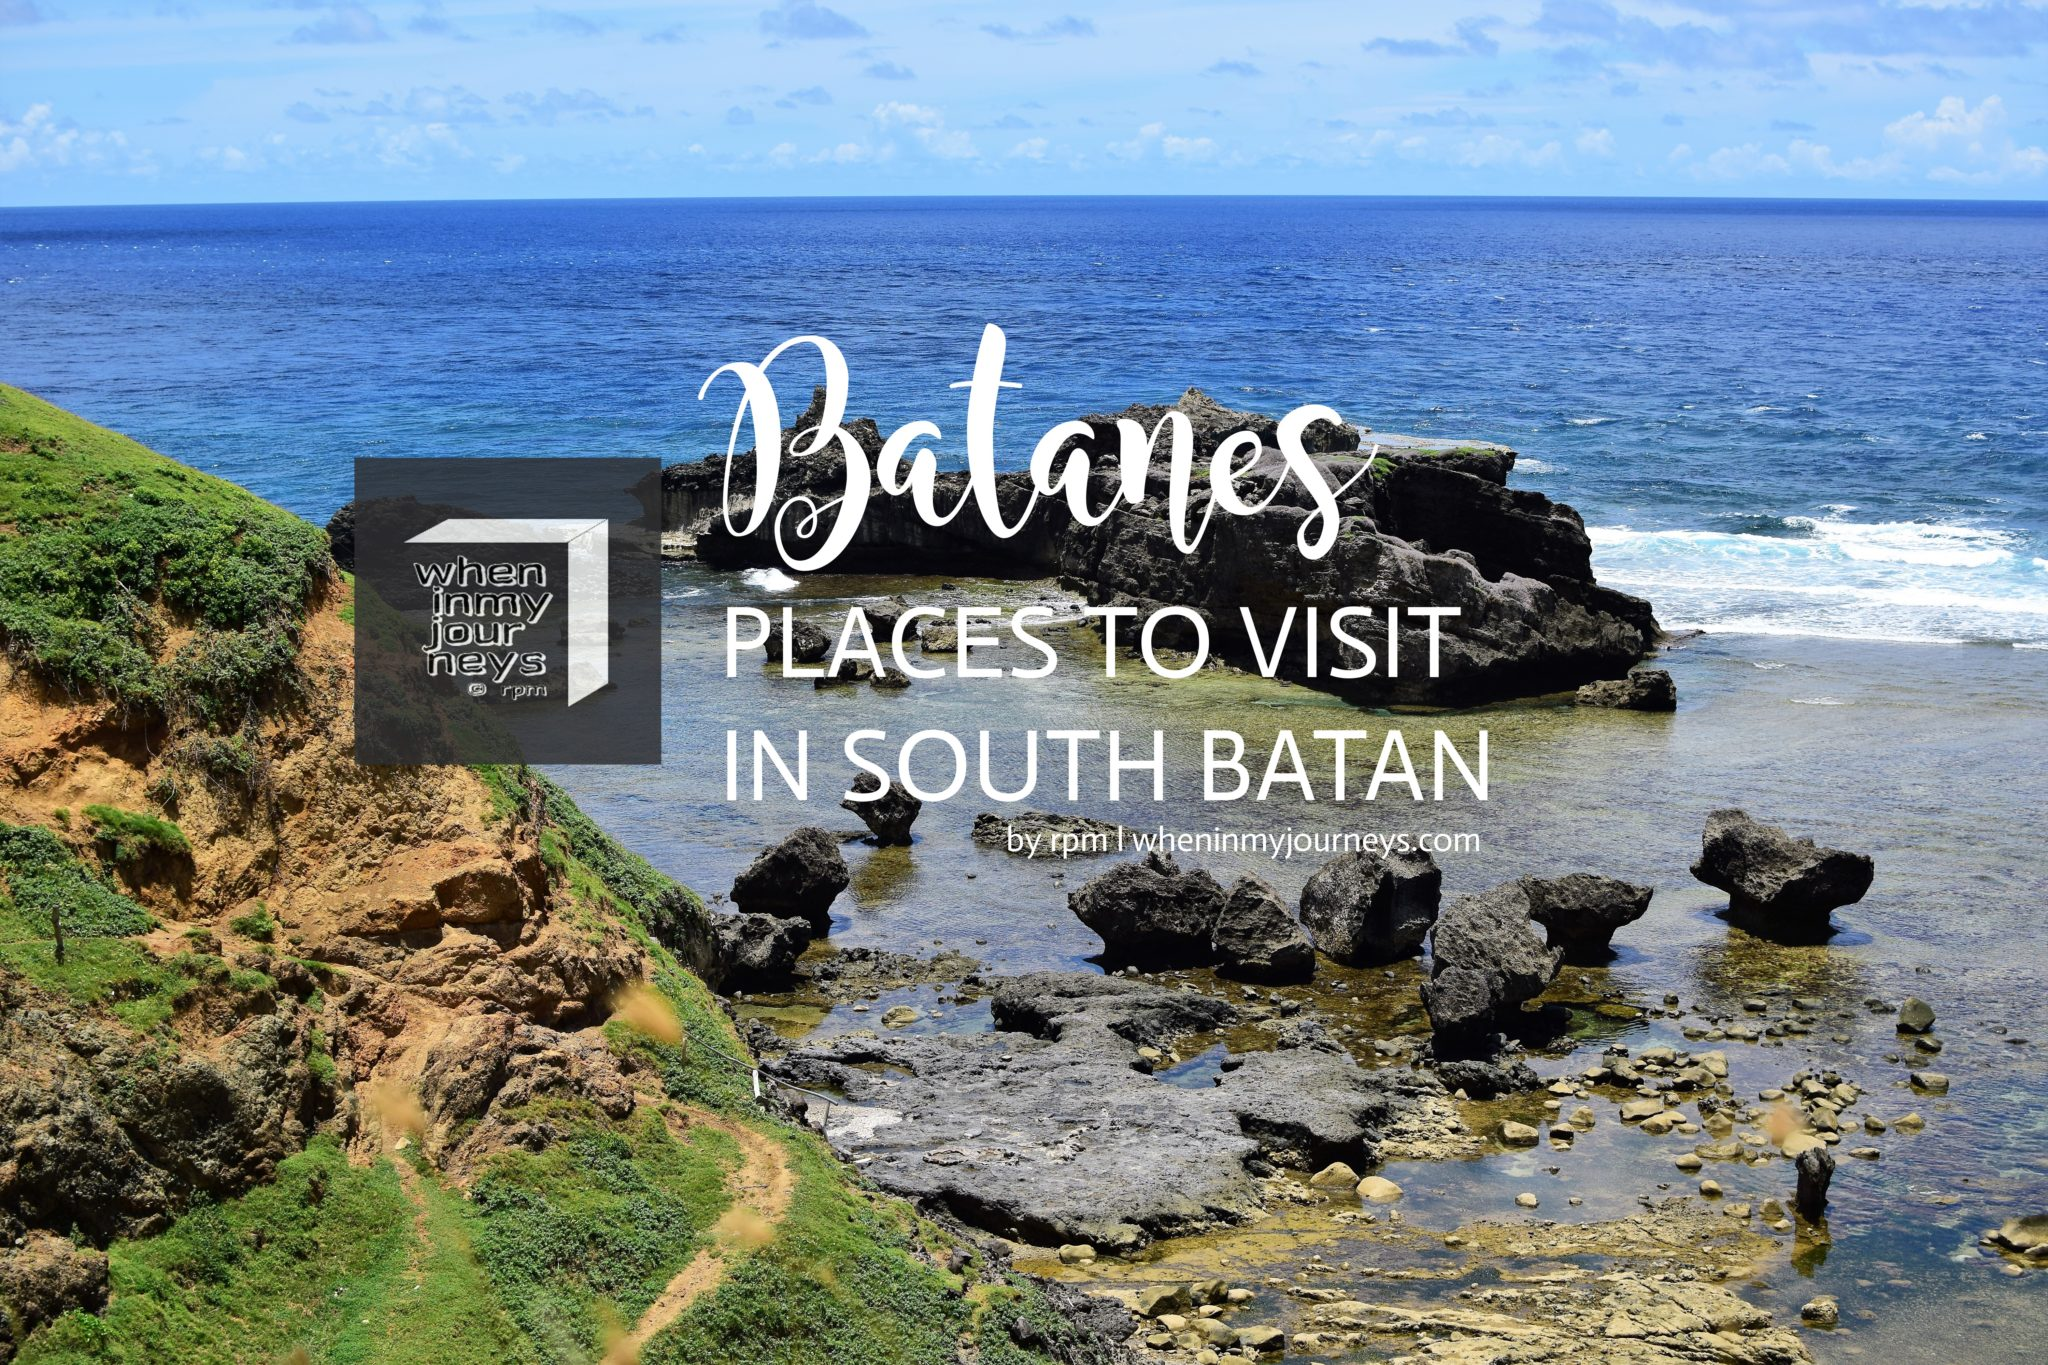 Batanes: Places to Visit in South Batan